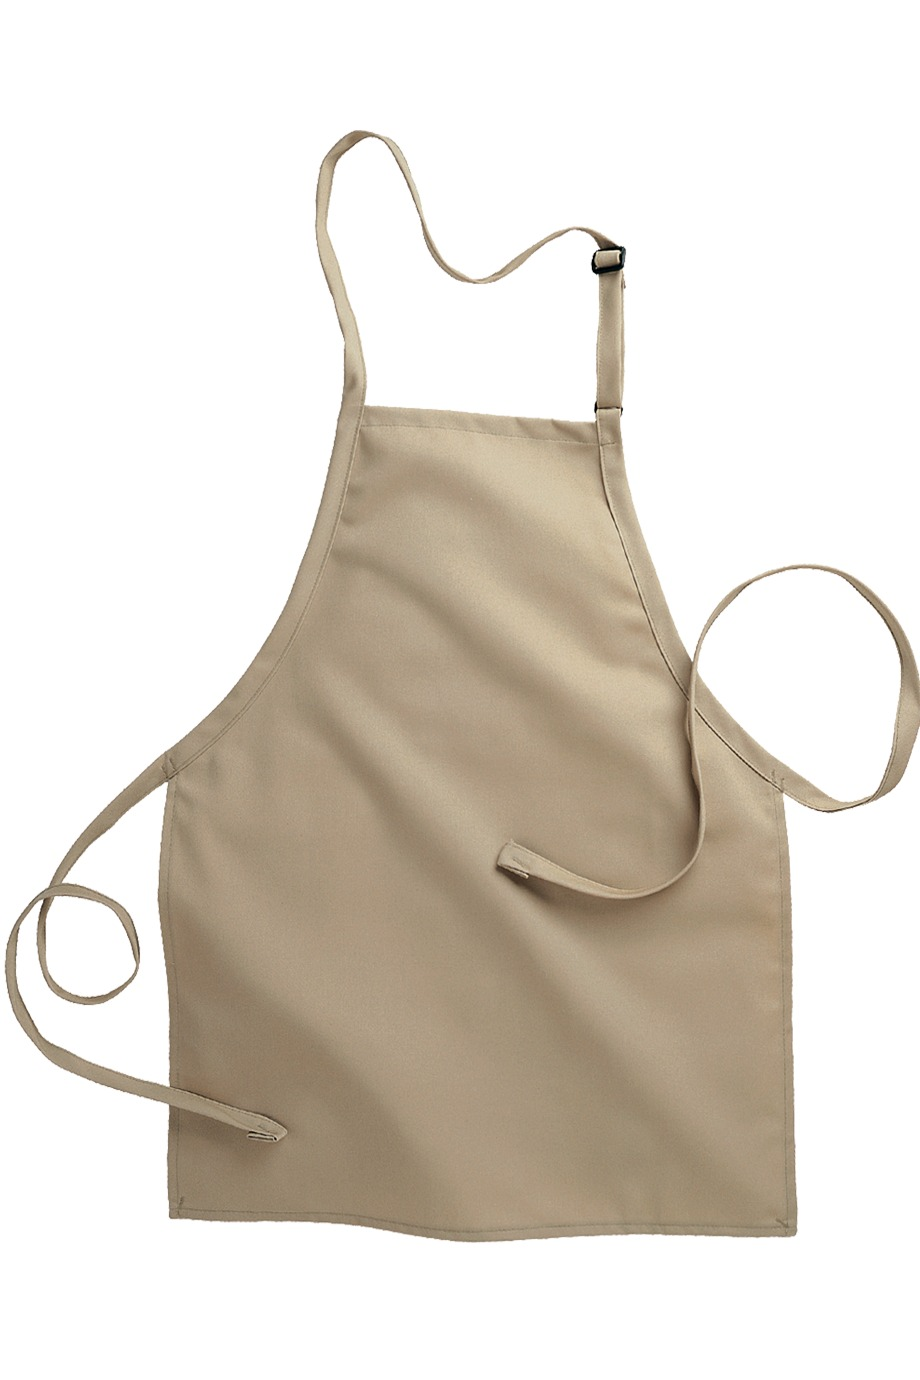 Edwards Garment 9004 - Bib Apron Without Pockets